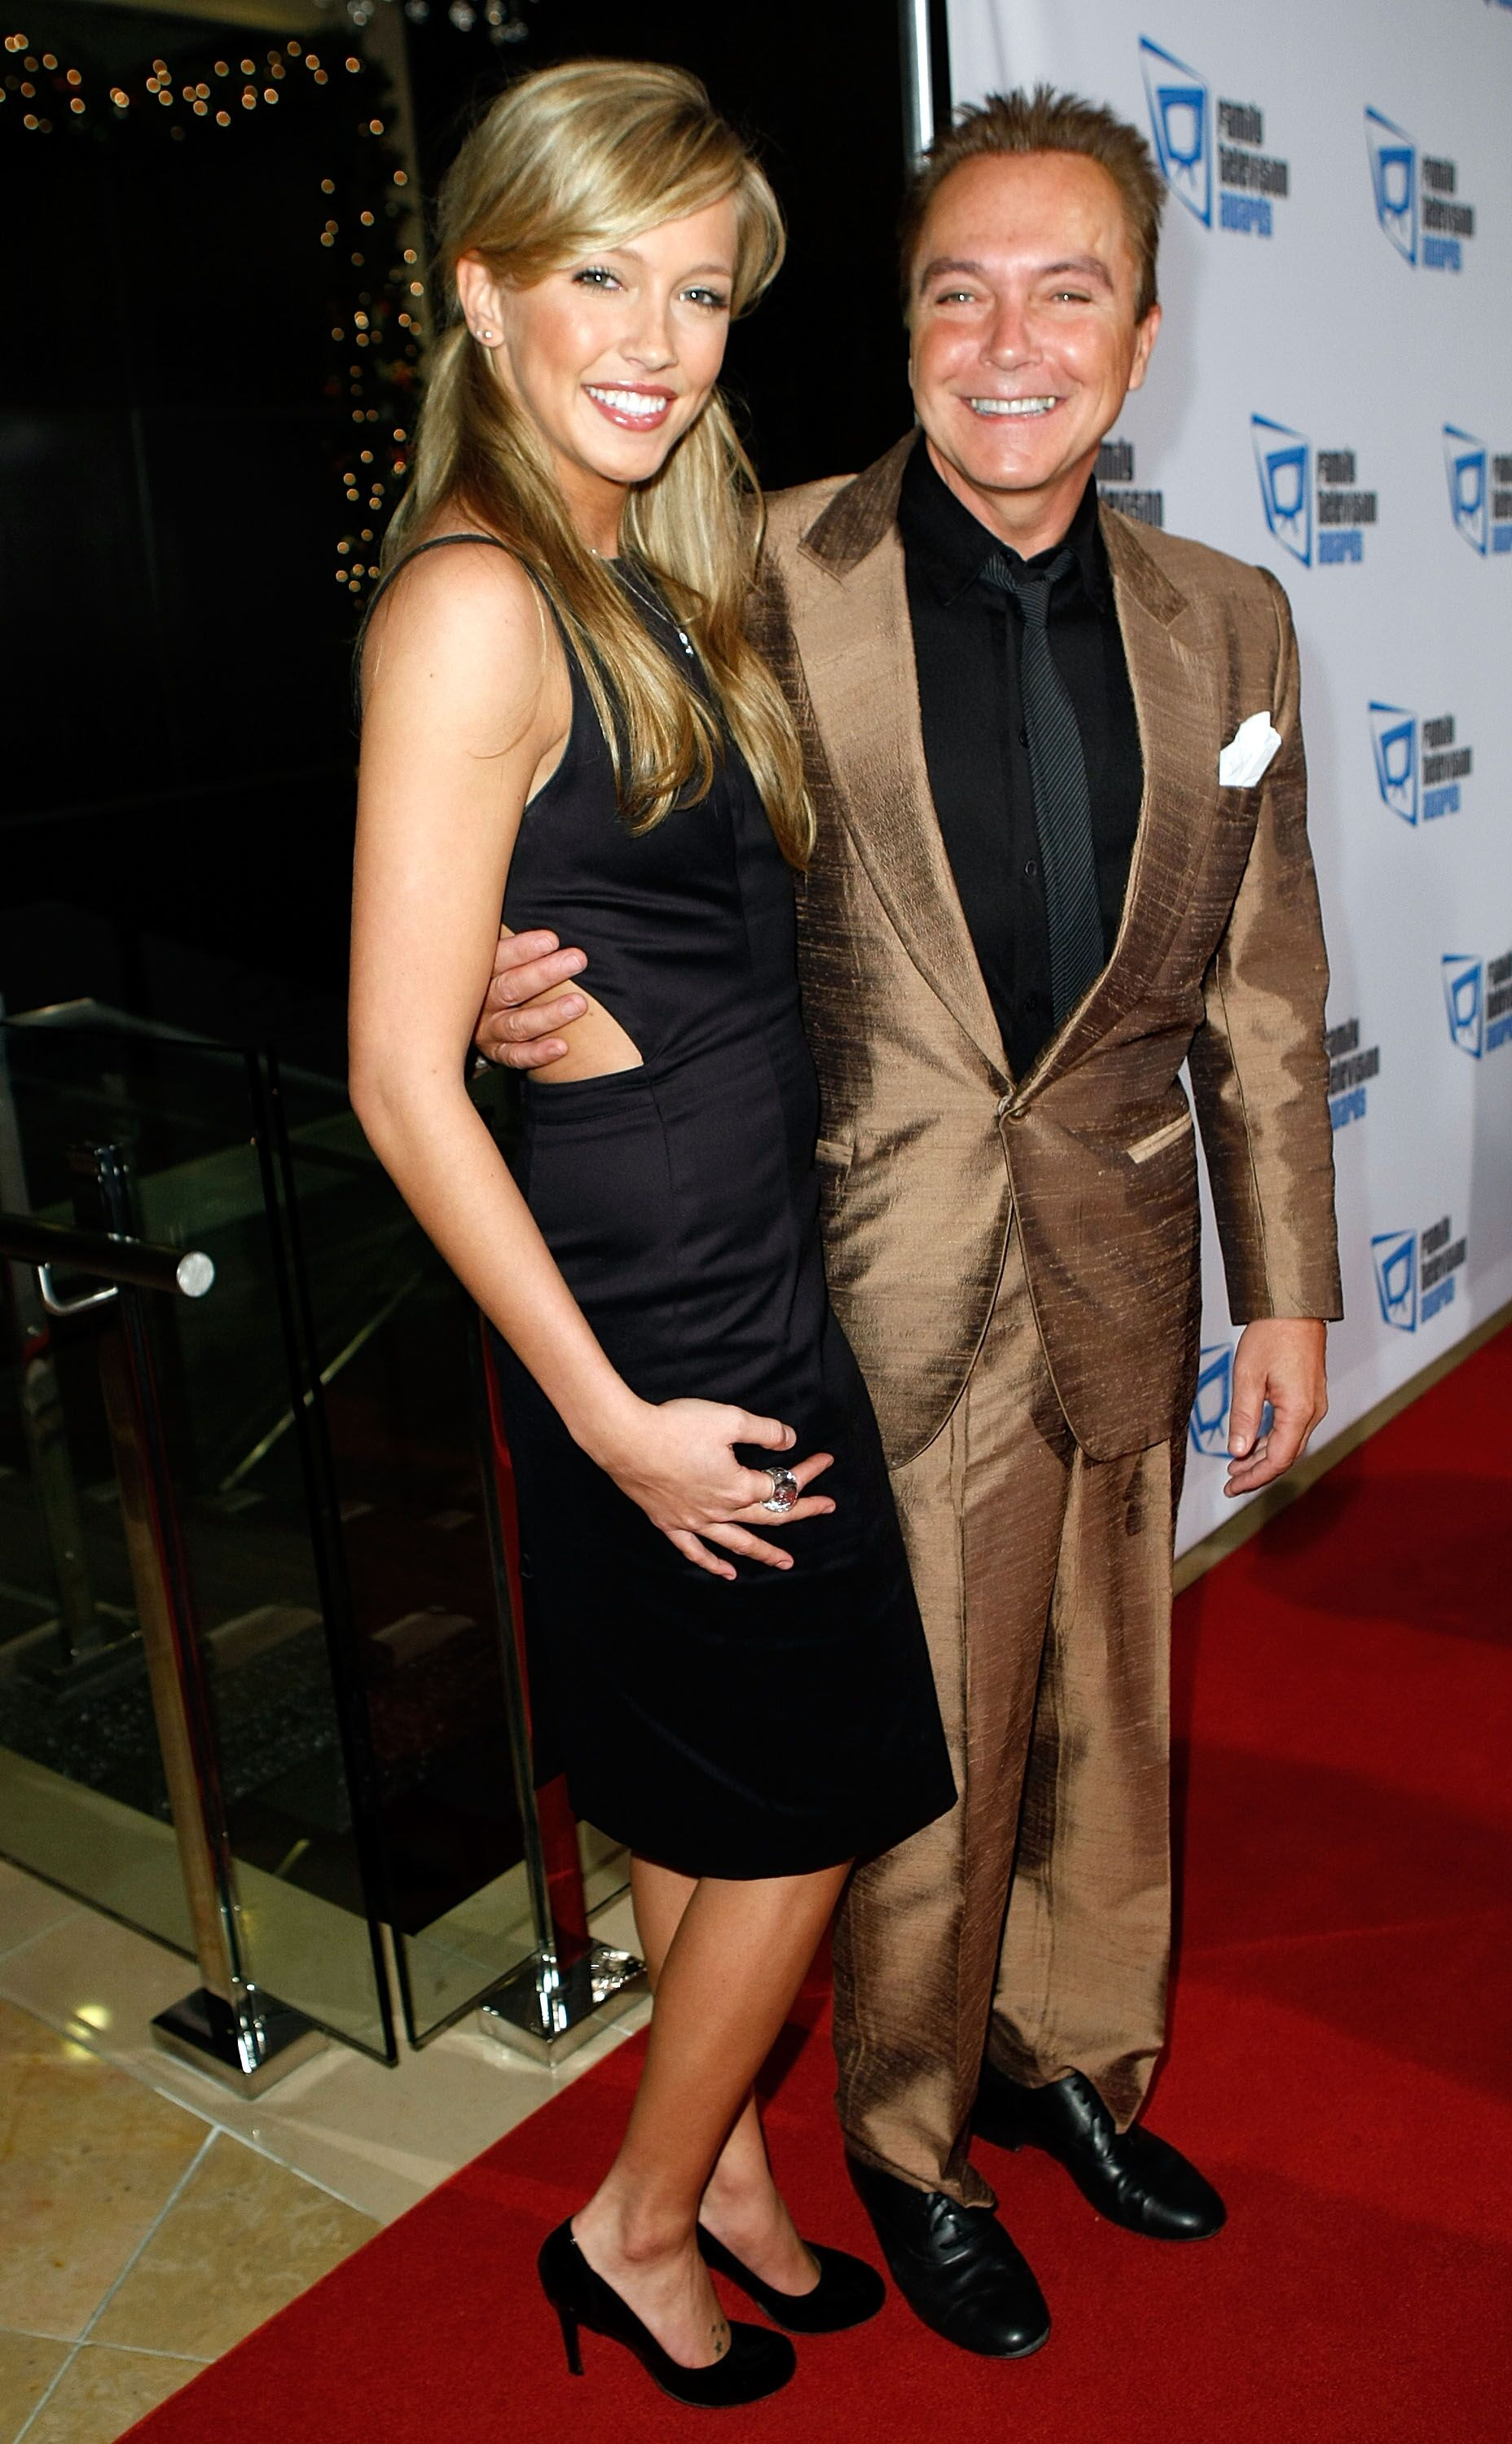 David Cassidy and his daughter Katie Cassidy arrive at the 9th annual Family Television Awards | Getty Images